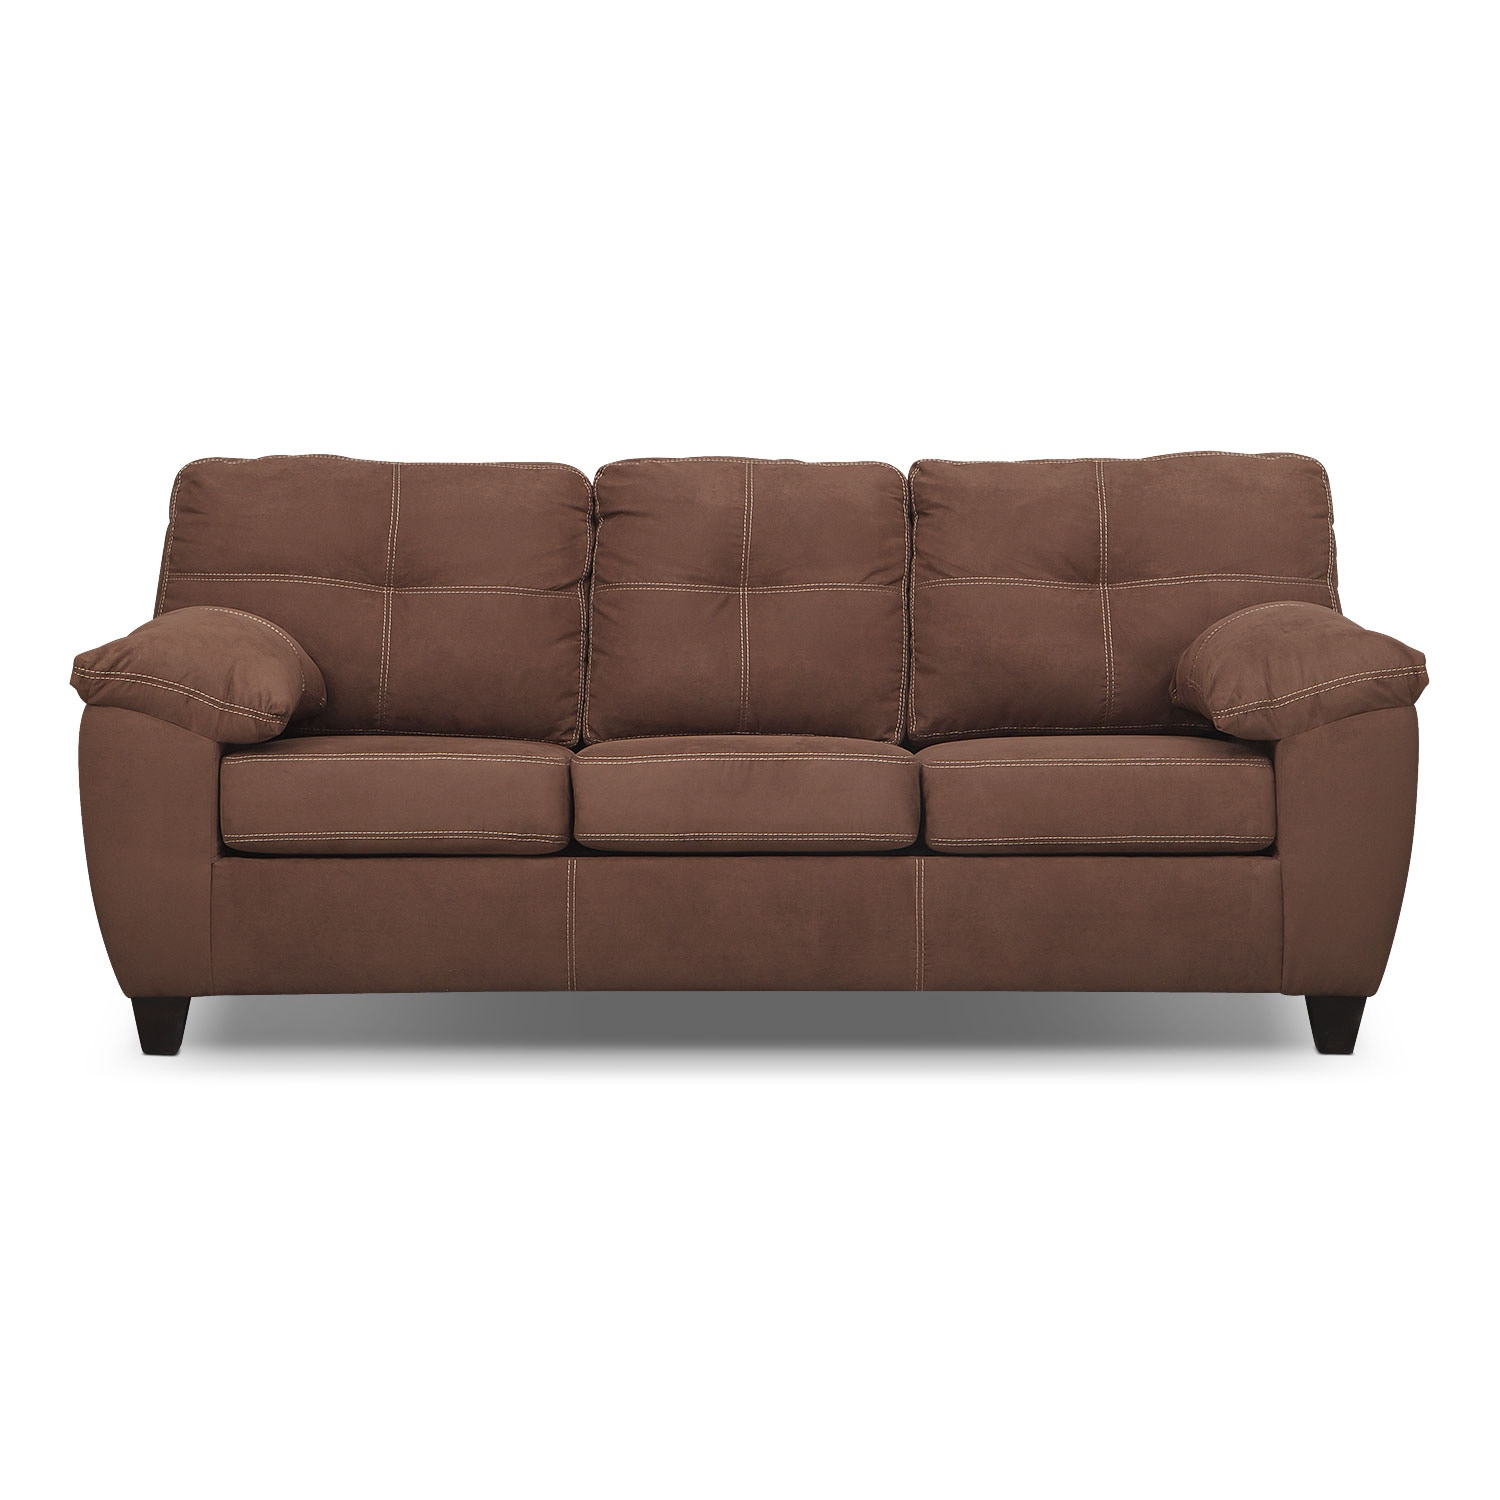 Outlet sofas d muebleria de angel outlet sofas temp thesofa - Muebleria de angel ...